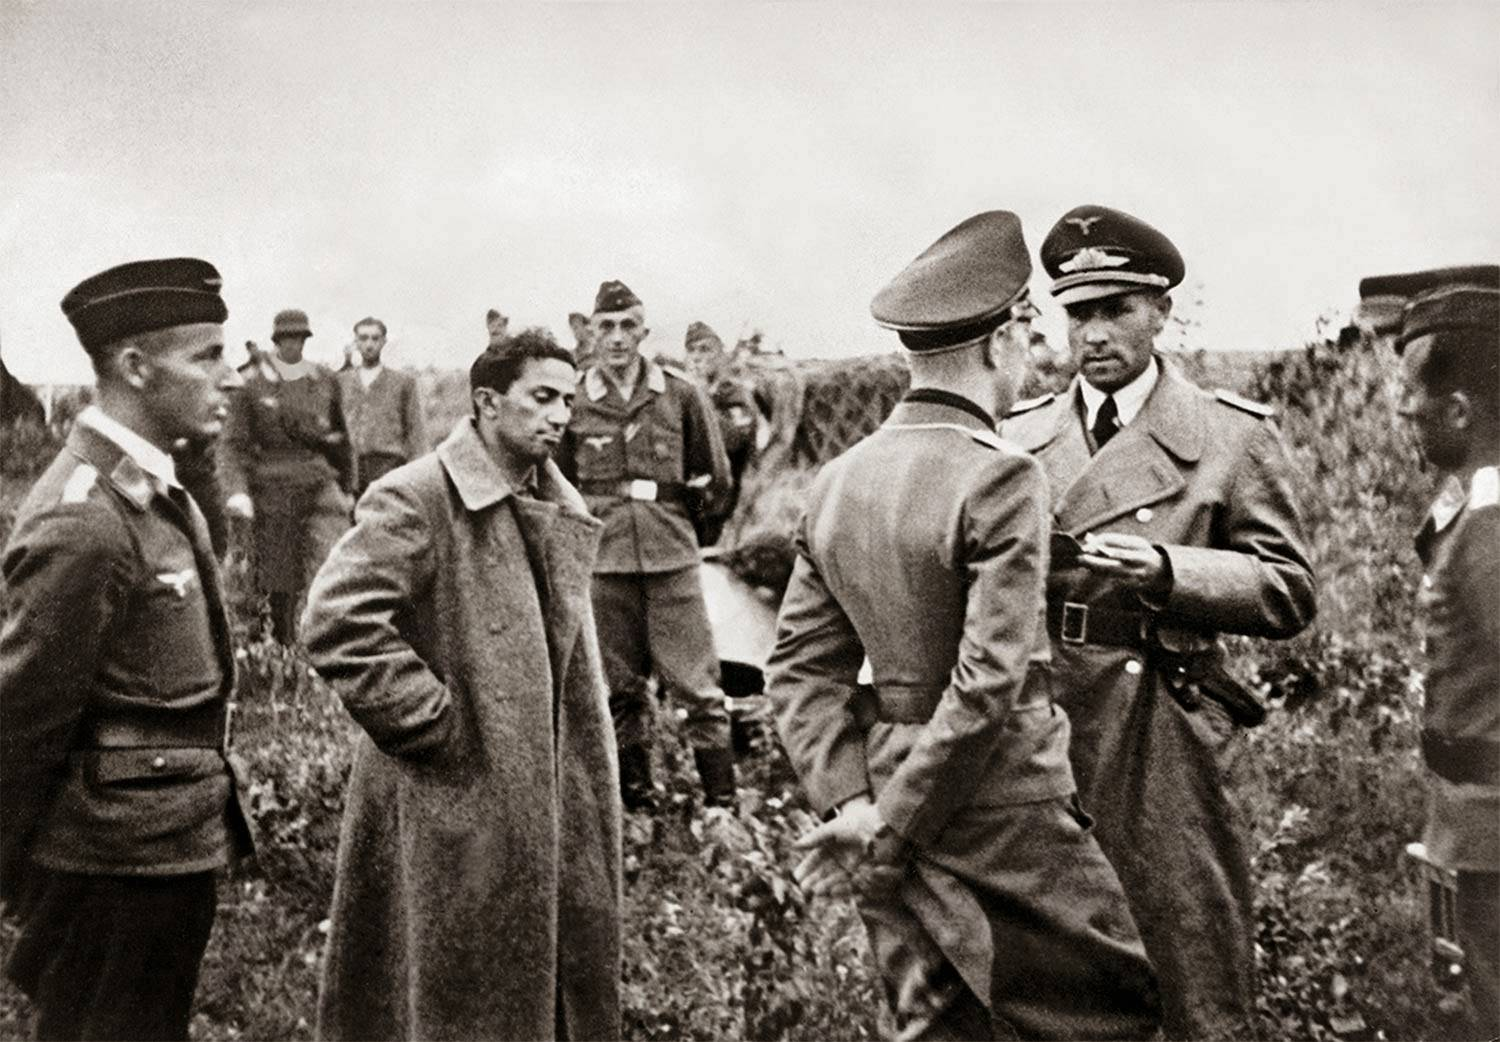 stalins_son_yakov_dzhugashvili_captured_by_the_germans_1941_1